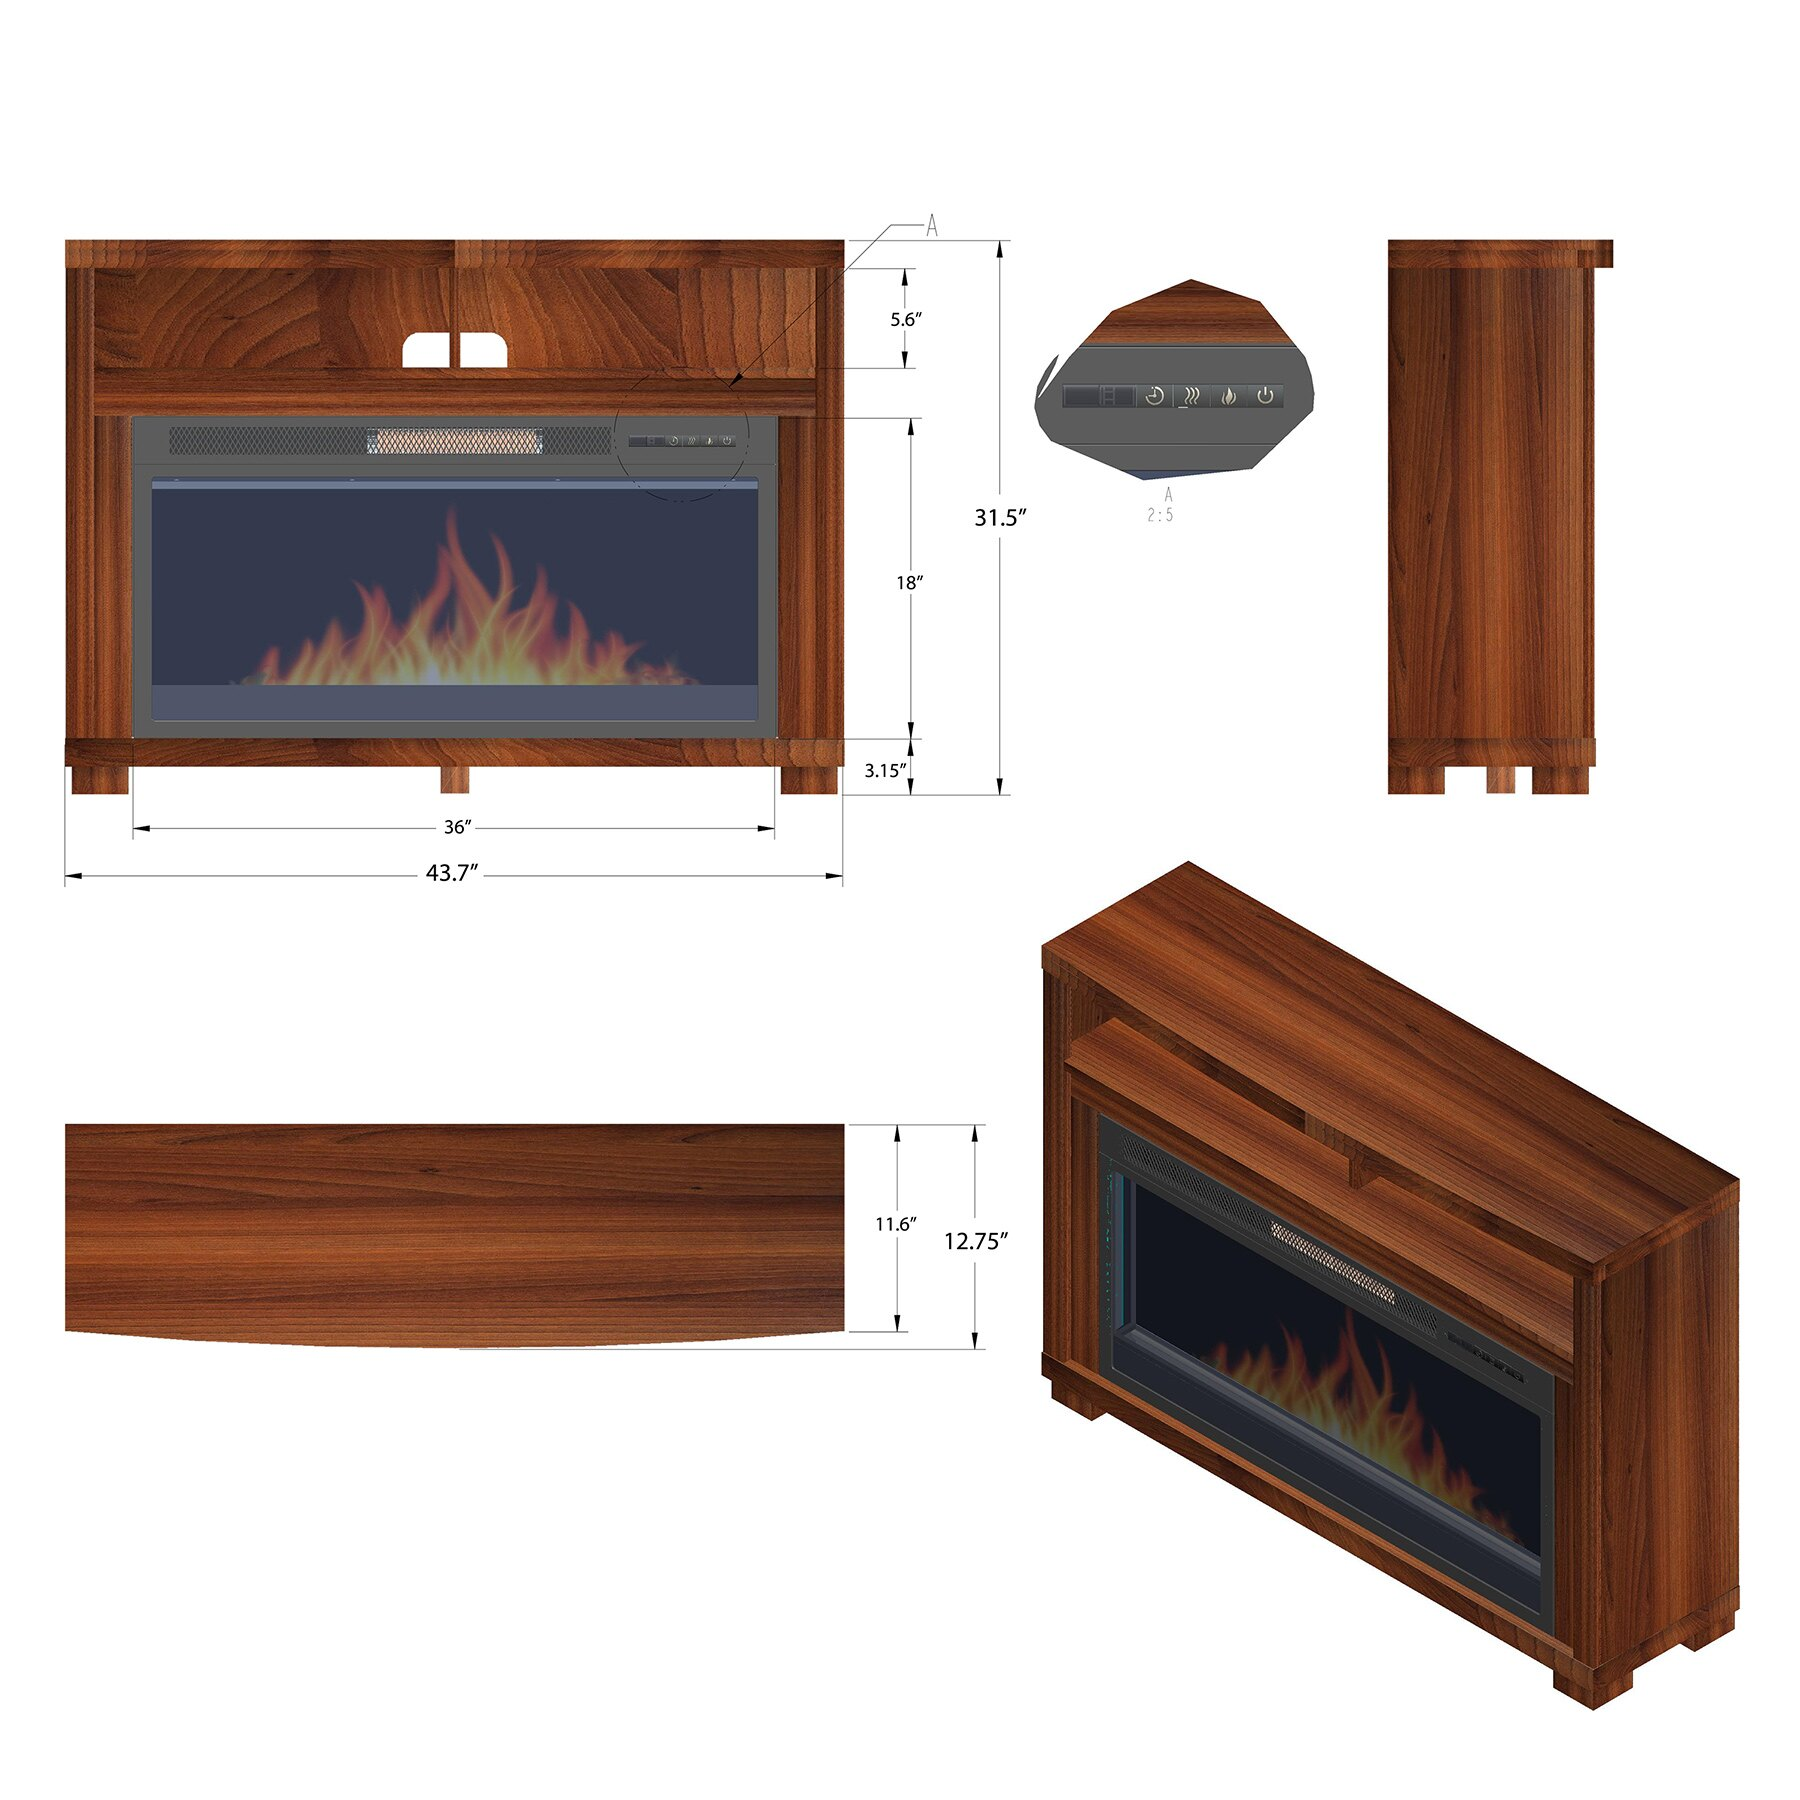 "AKDY 44"" Freestanding Brown Wooden Electric Fireplace Heater w/ Remote 1"